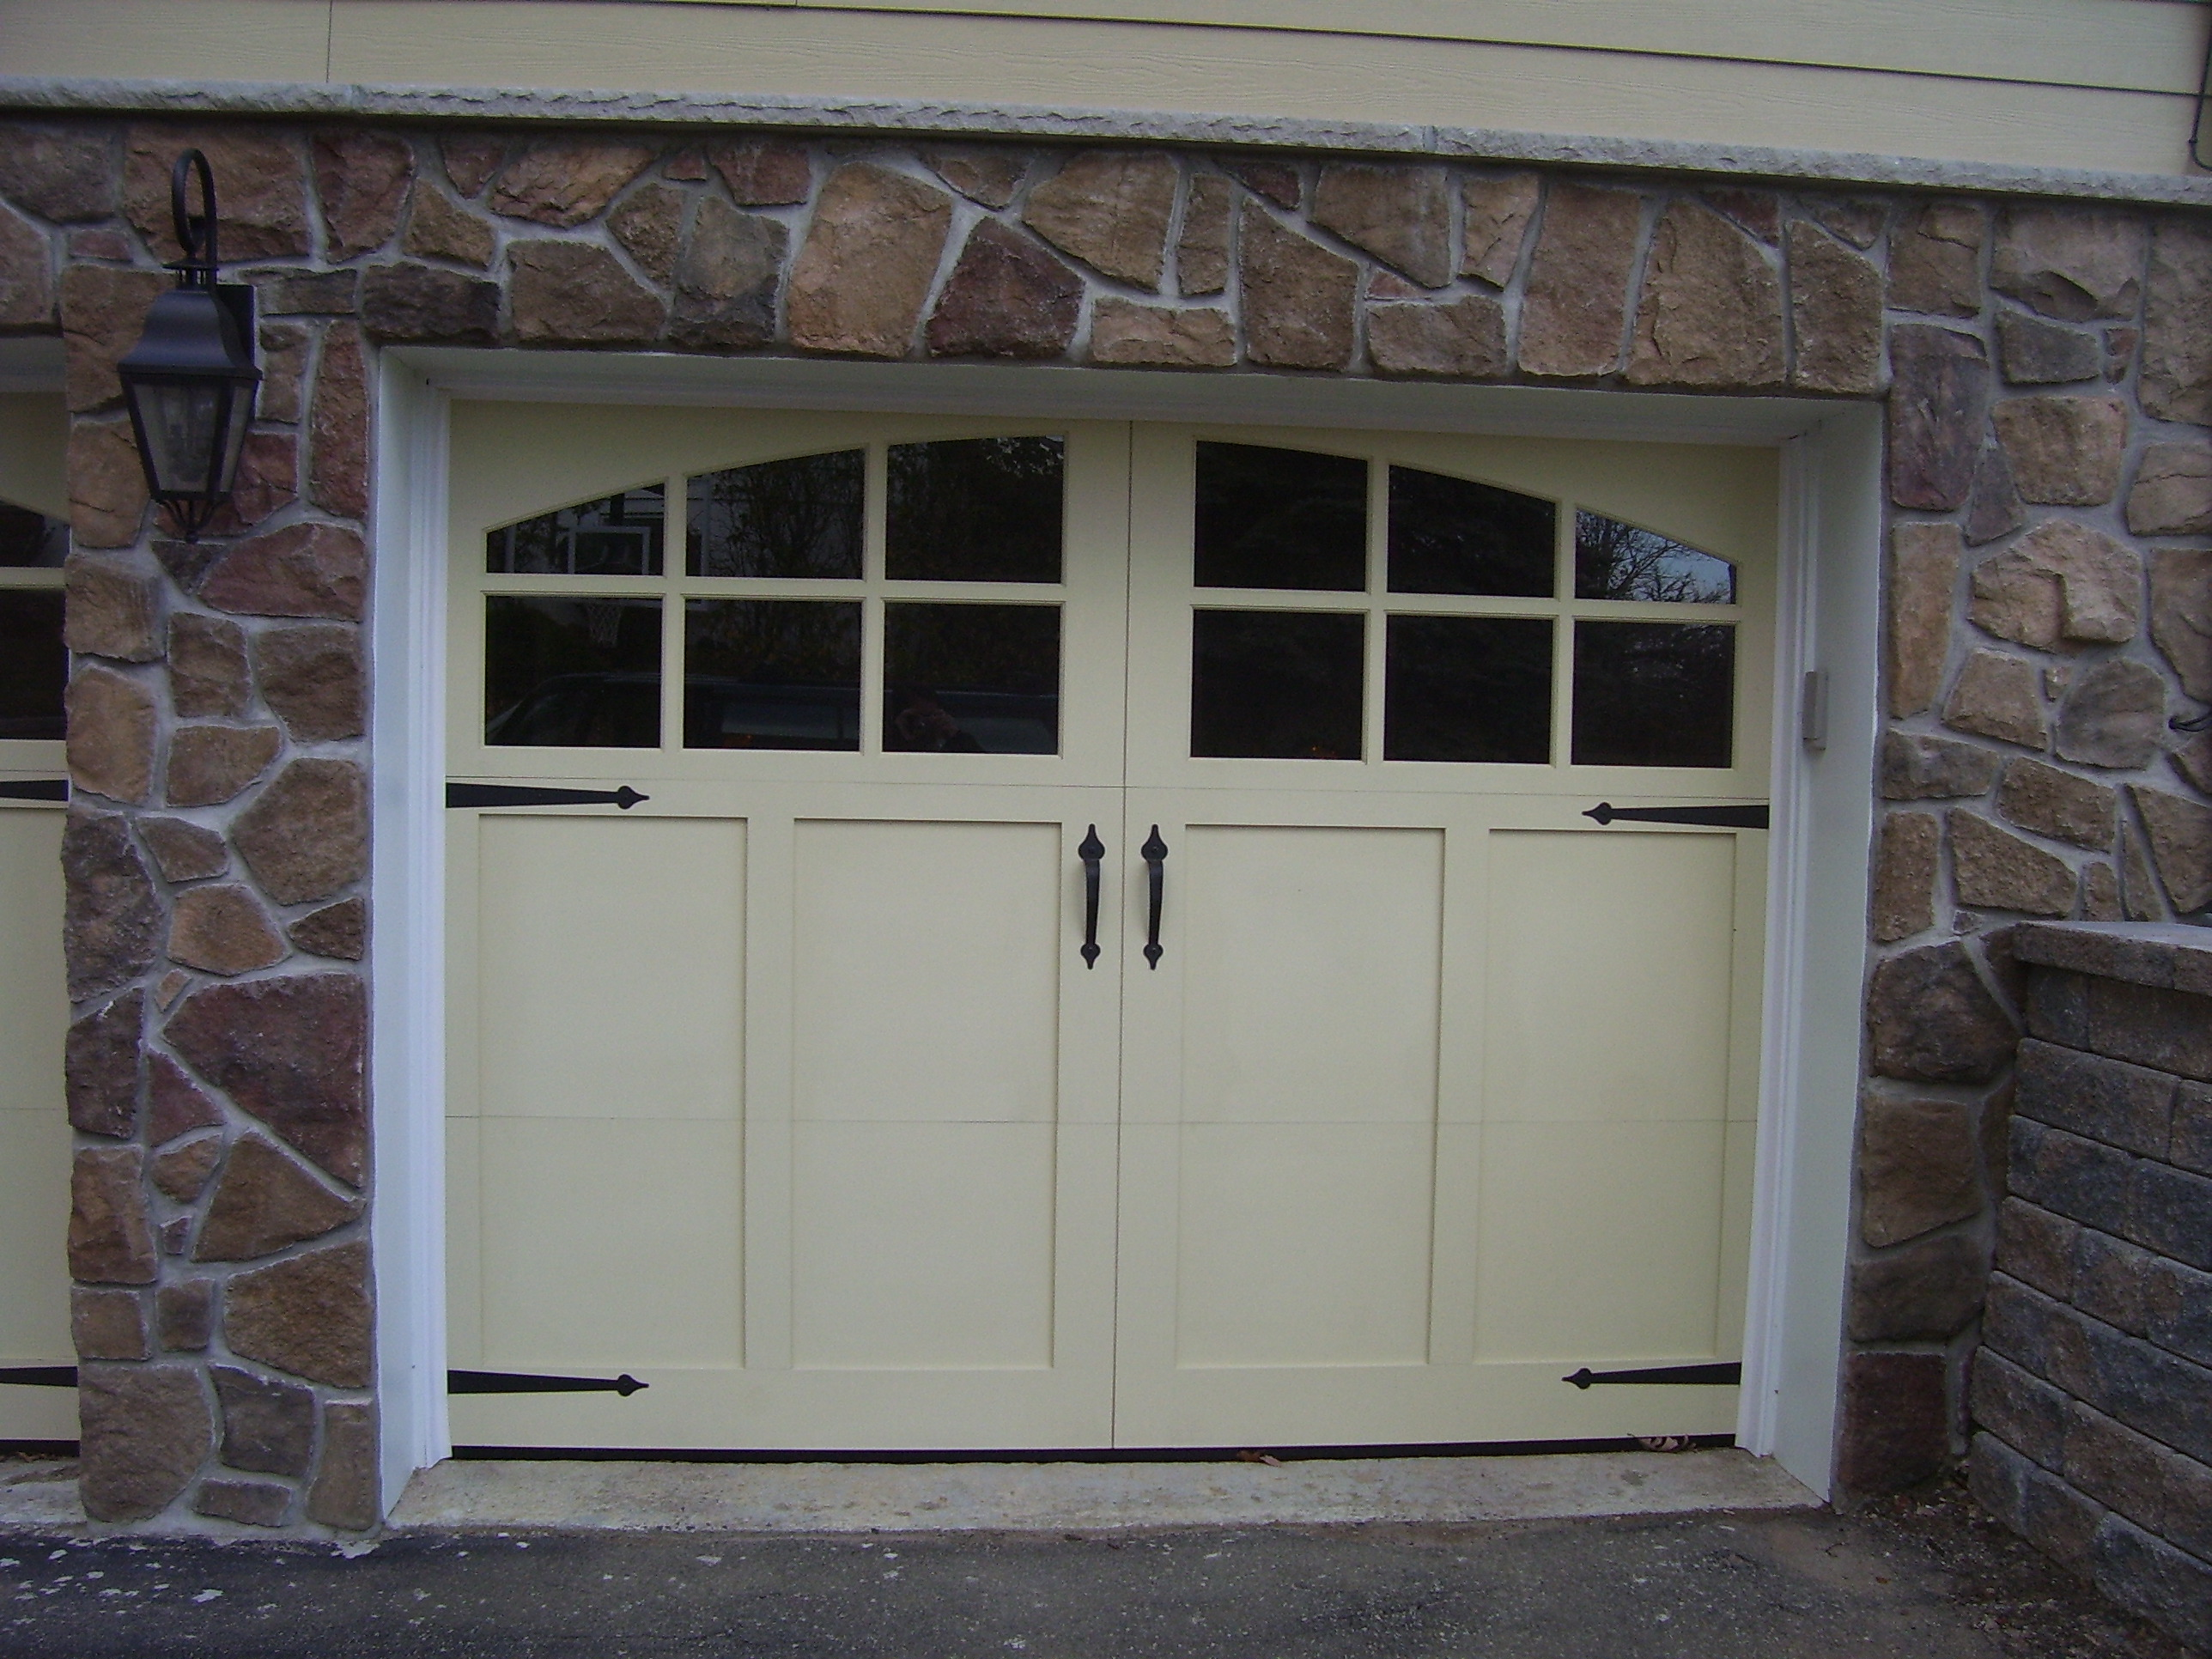 Garage door replacement window panels replacement panels for Door window replacement